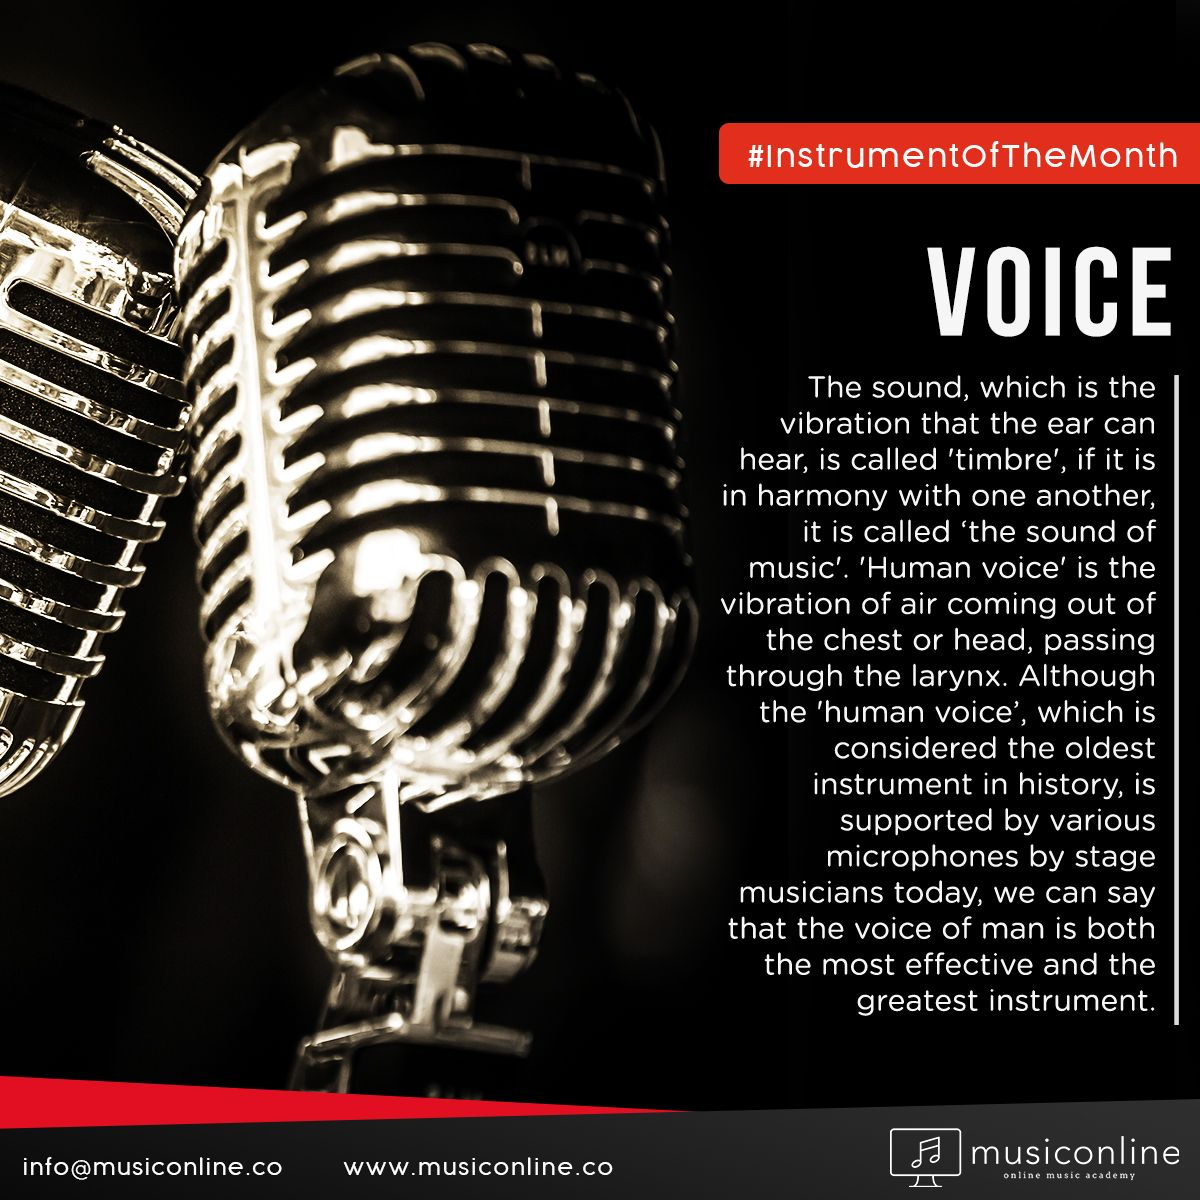 We continue our posts of The Instrument of The Month with 'The Voice', which is considered to be the oldest instrument in history. . . . #musiconline #instrumentOfTheMonth #AllAbout #Voices #instruments #instrumentalmusic #VocalLessons #MusicIsLove #MusicIsLife #MusiciansLife #LearnMusic #MusicLessons #OnlineMusic #musicAcademy #OnlineMusic #FridayMusic #itsFriday #music #online